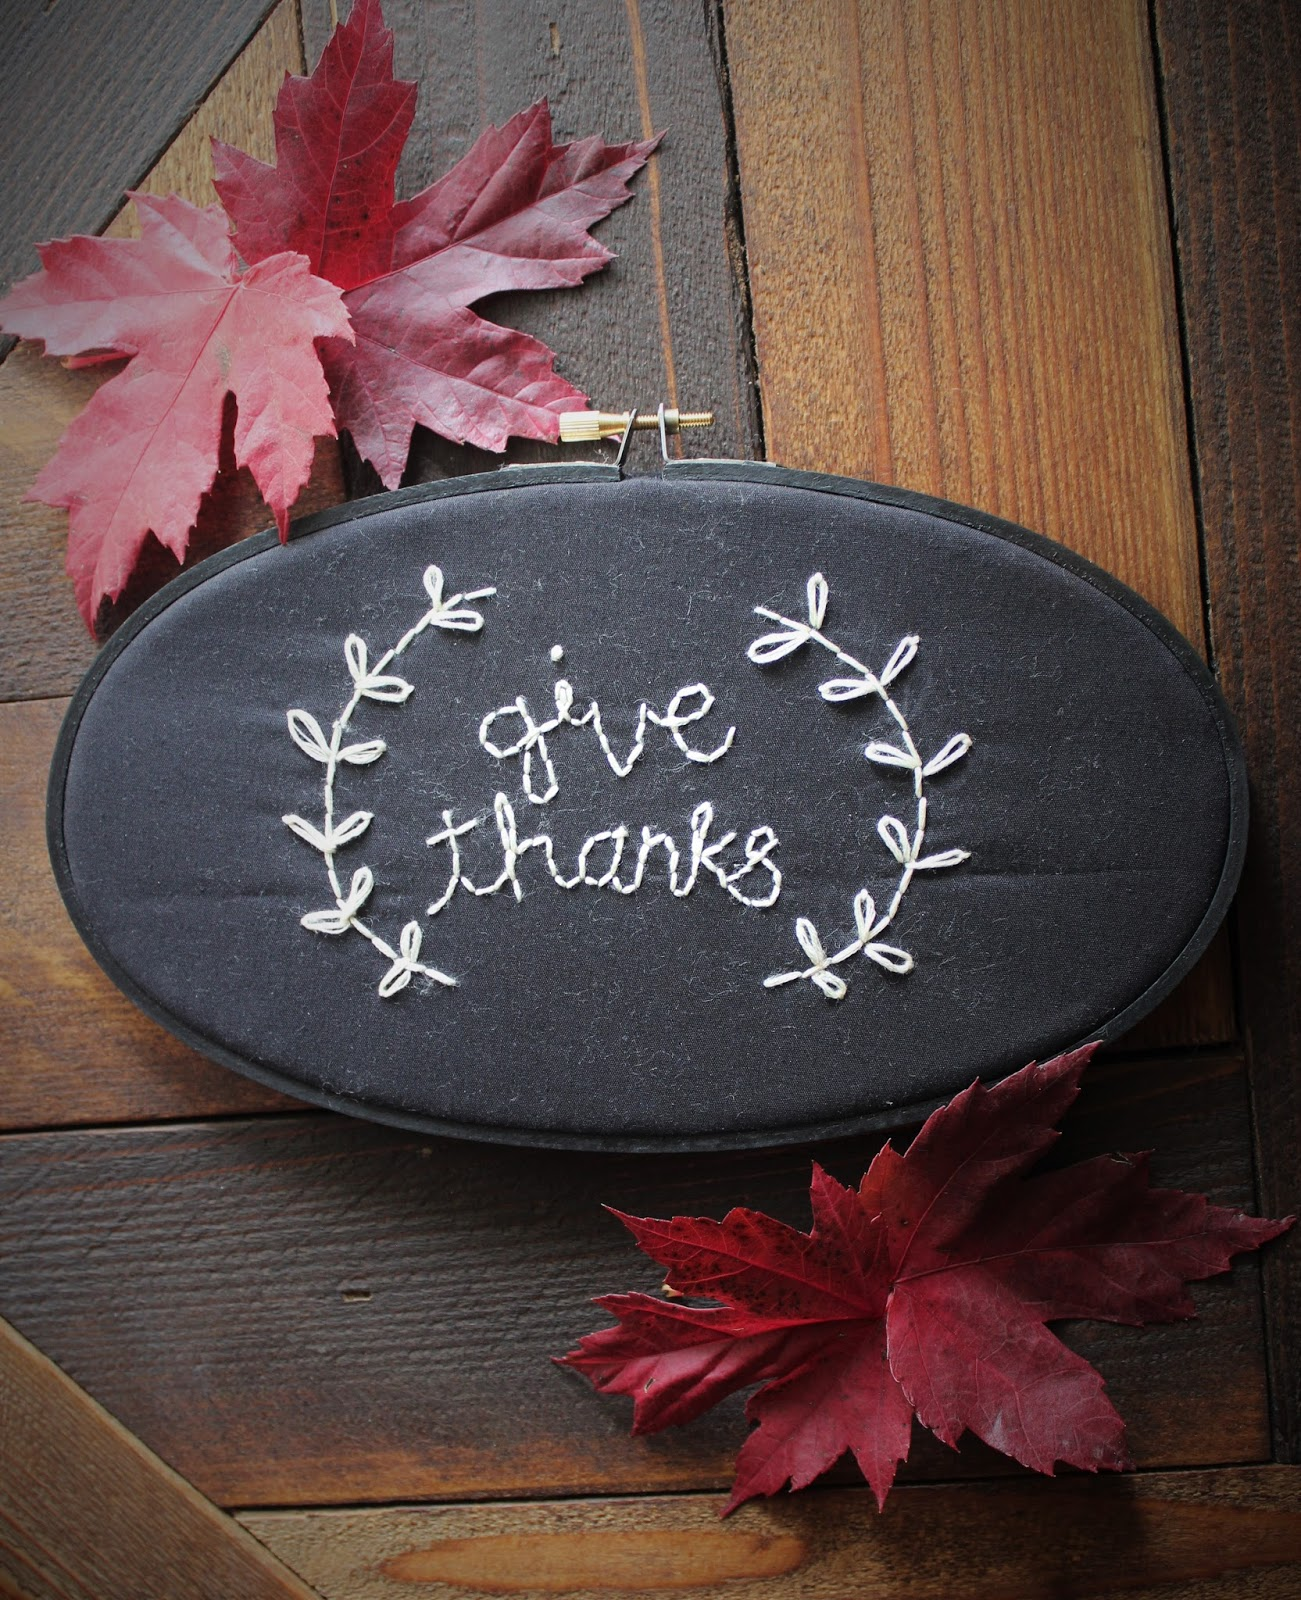 Tweetle Dee Design Co.: Give Thanks - Embroidery Pattern Download